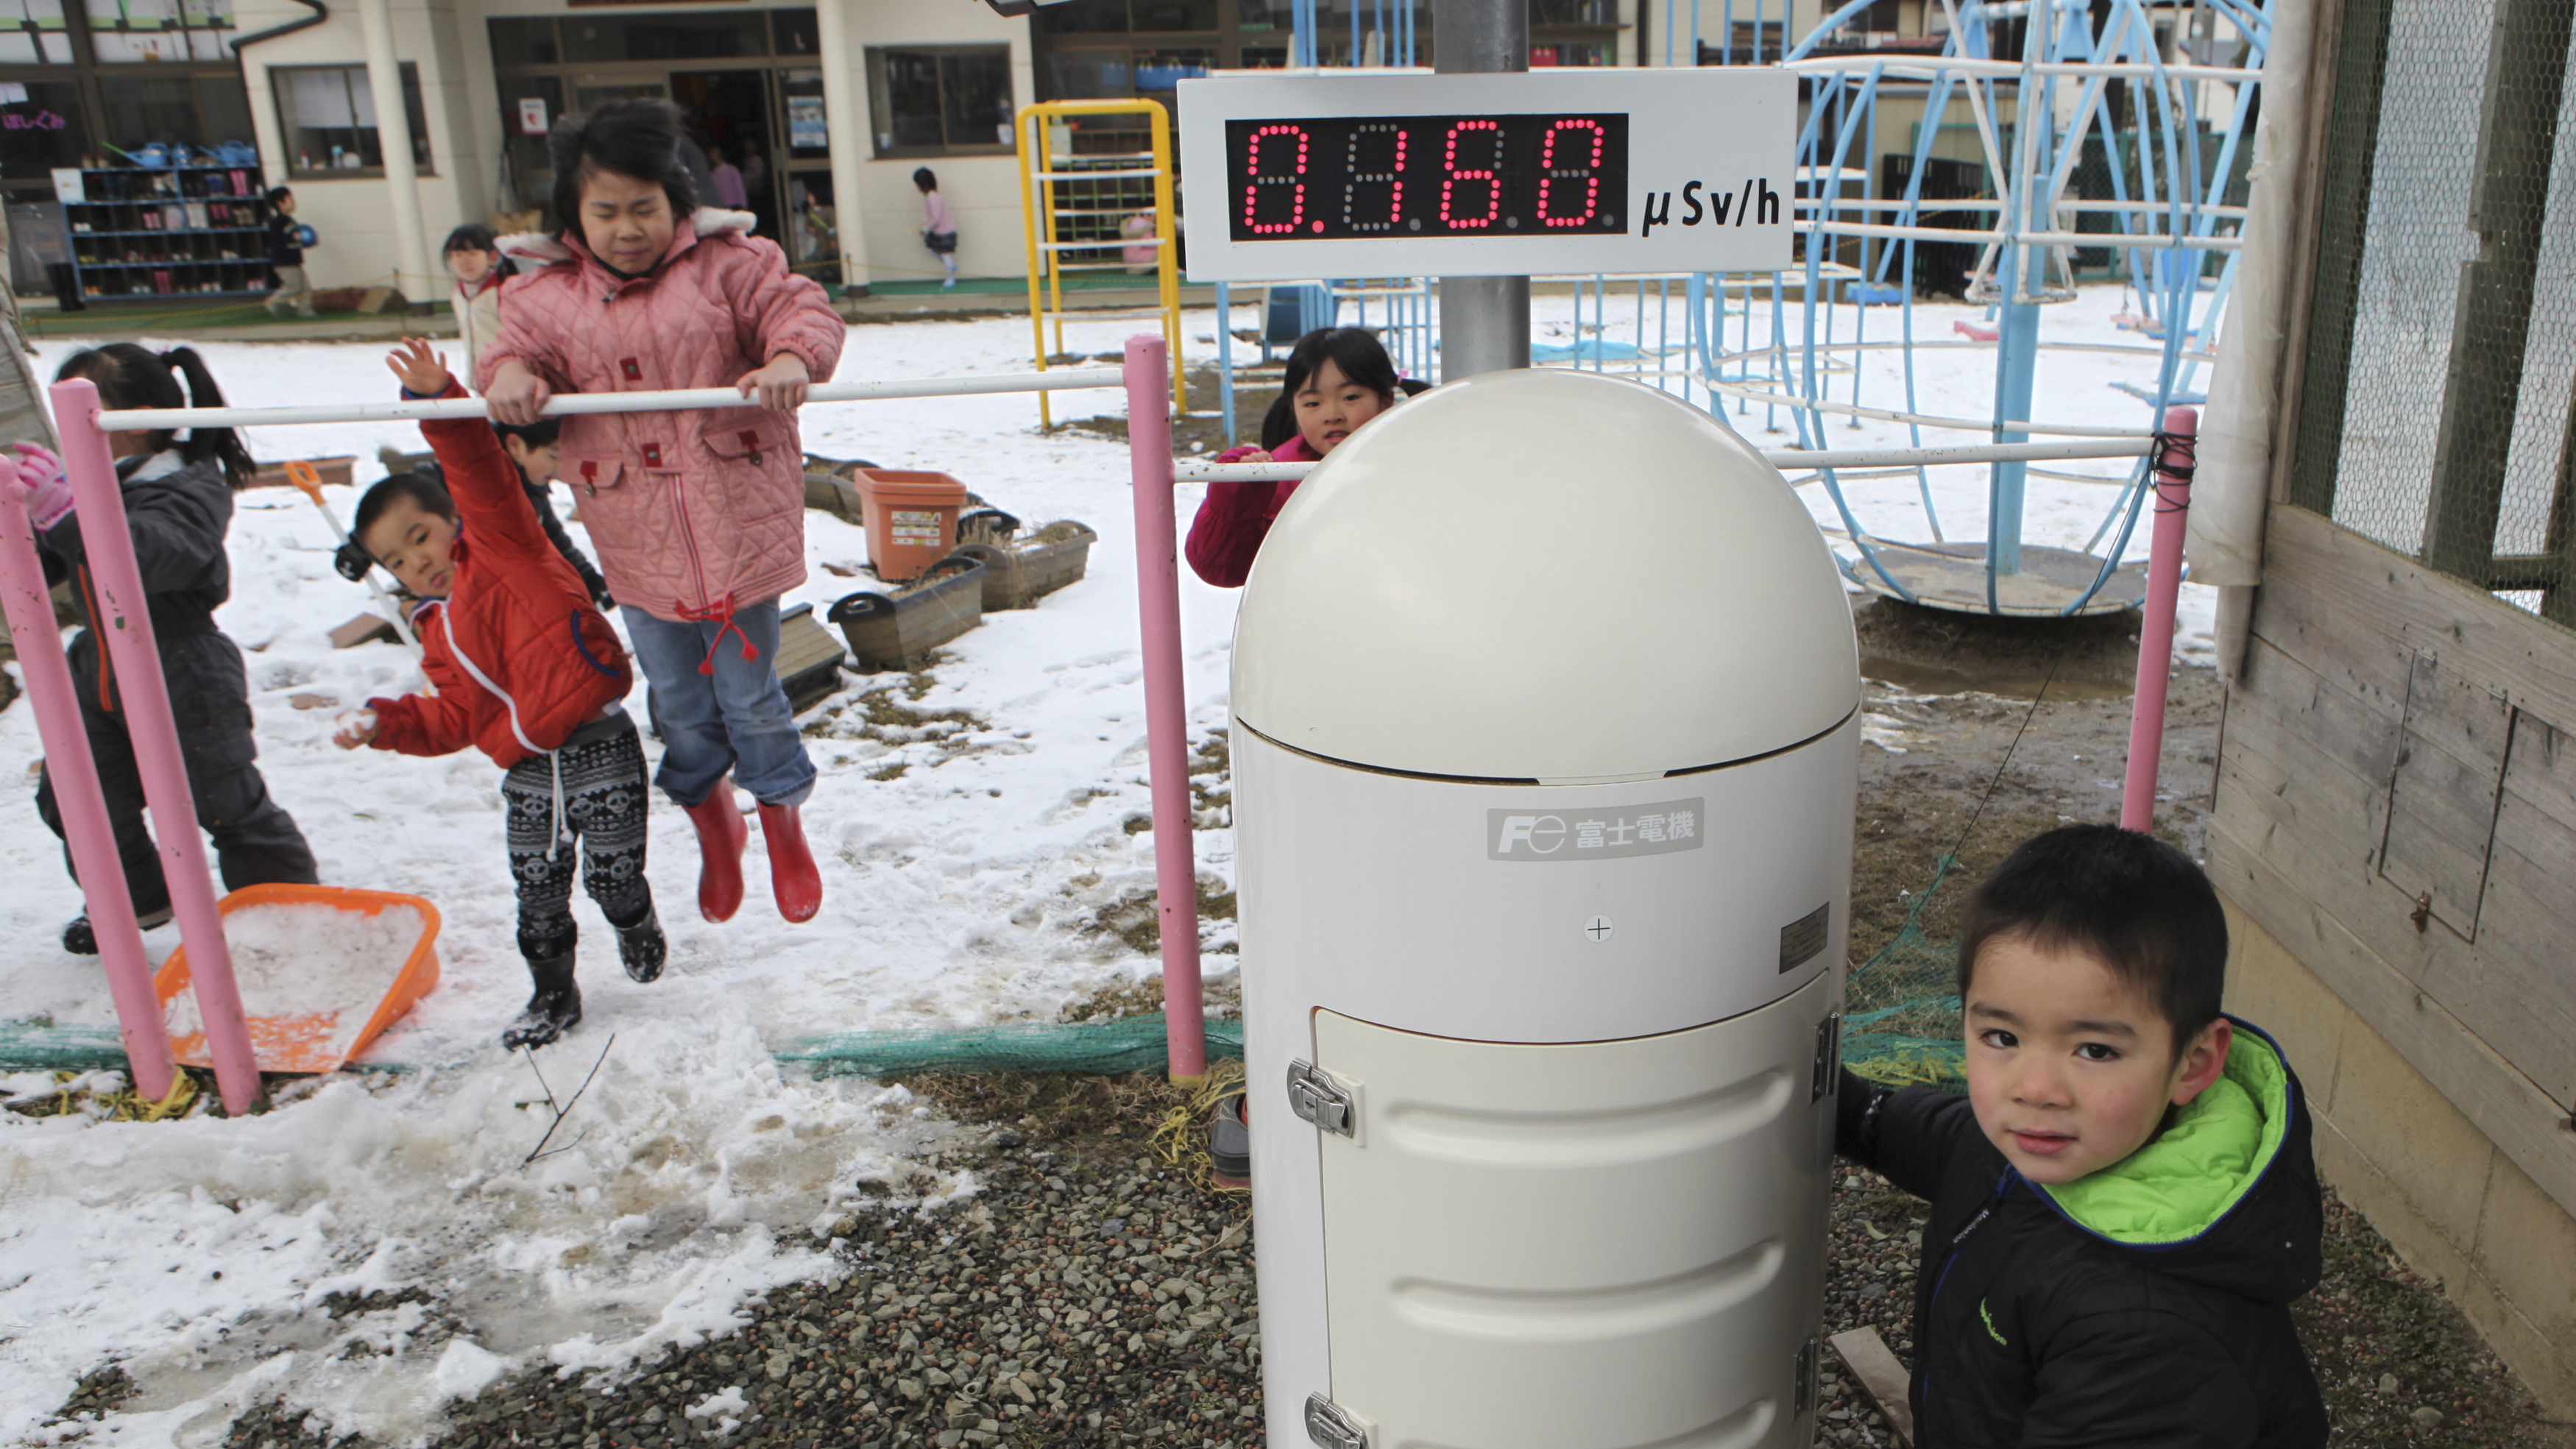 Children play near a Geiger counter that monitors radiation at a kindergarten about 30 miles from the tsunami-crippled Fukushima Daiichi nuclear power plant. The government is increasingly pushing families displaced by the disaster to return to their home